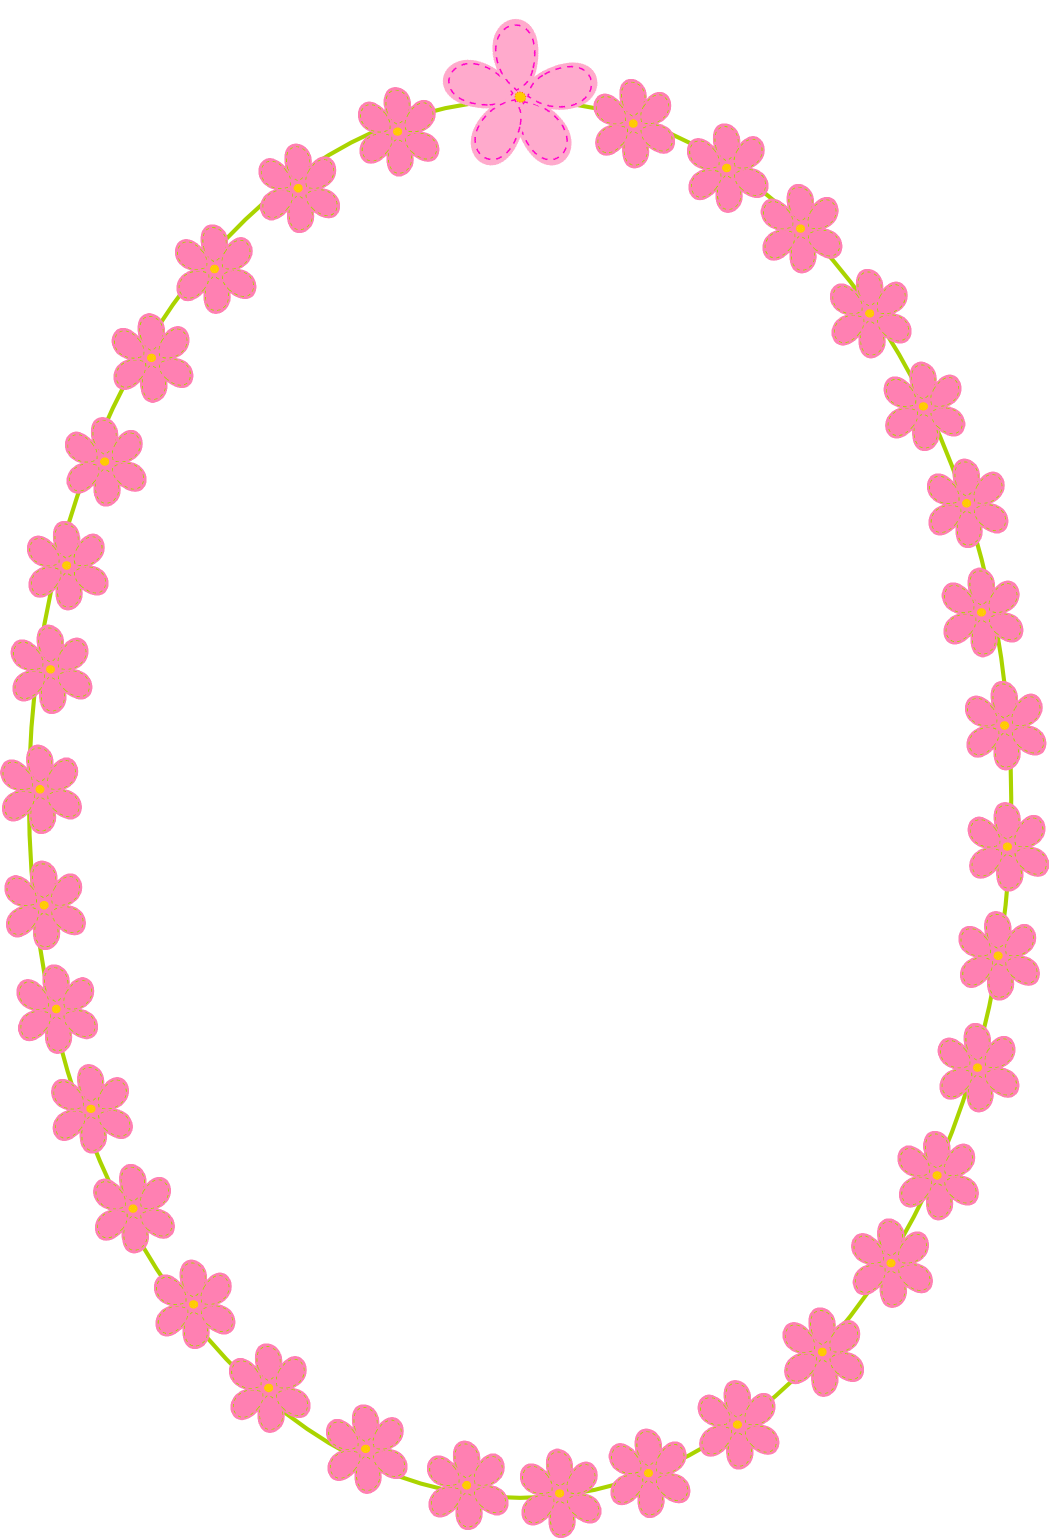 Frame clipart summer. White and pink flowers